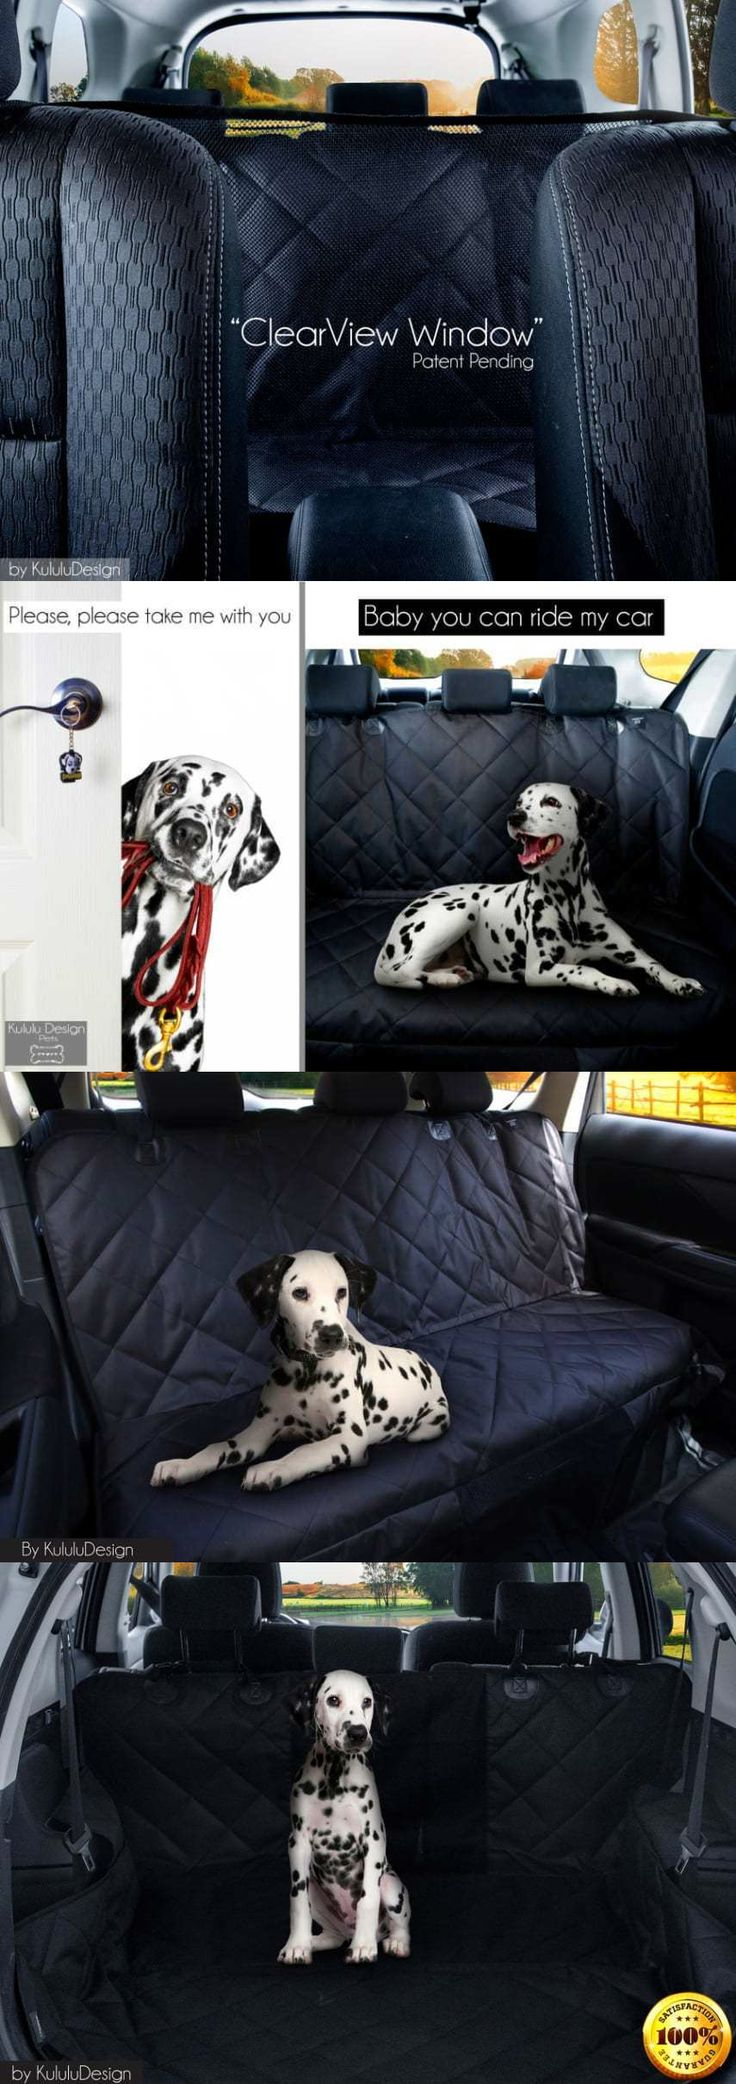 Car Seat Covers 117426: Top Quality Pet Seat Cover Hammock Protector Waterproof Travel Dog Cat Car Pets -> BUY IT NOW ONLY: $70.92 on eBay!